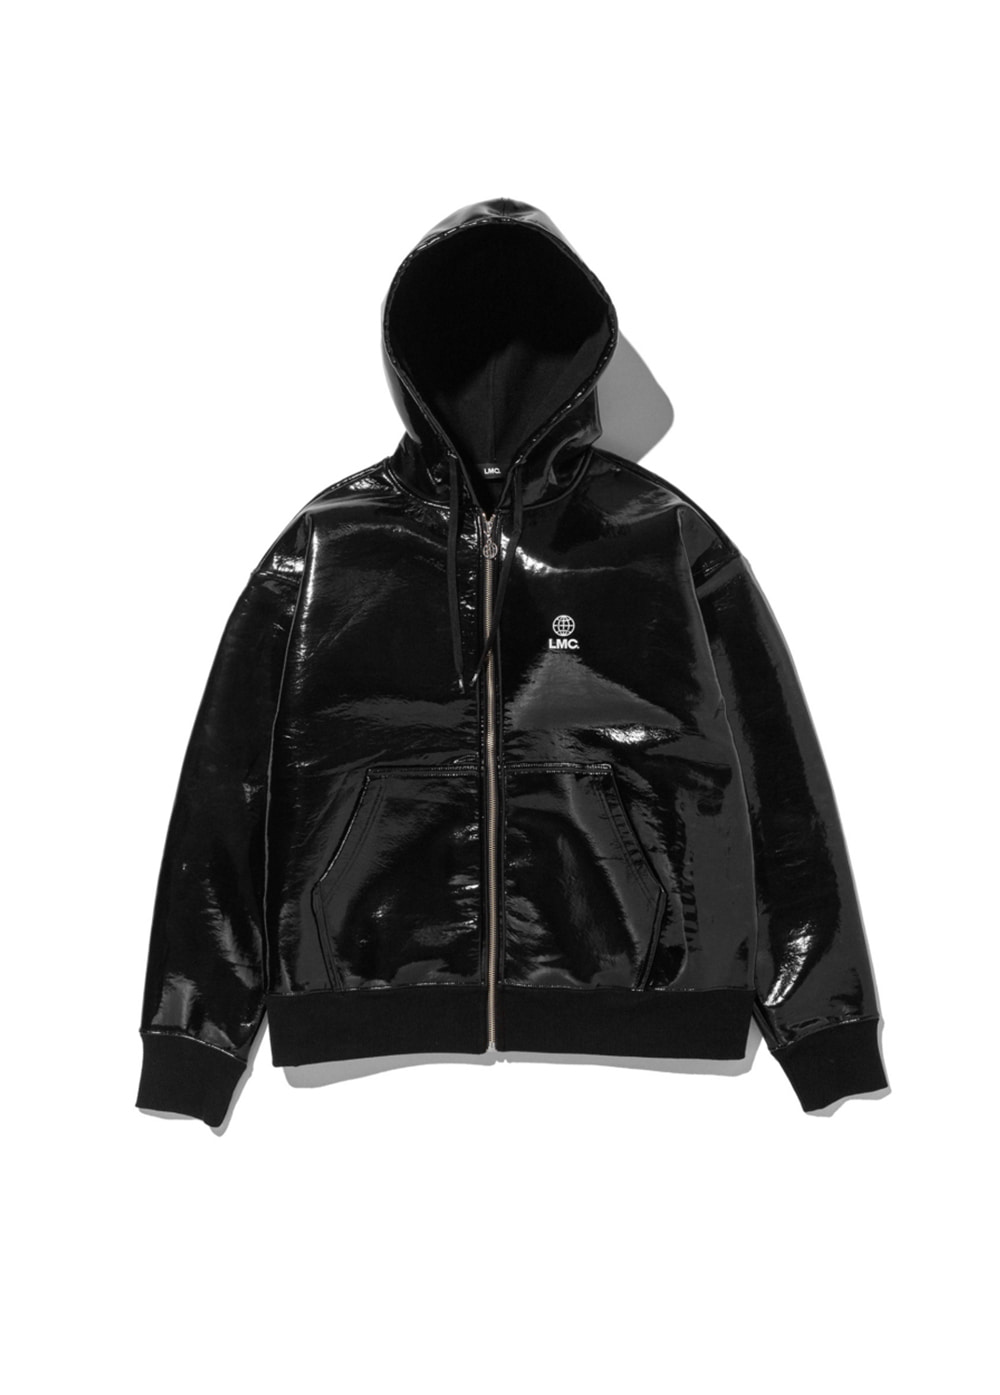 LMC PVC SWEAT ZIP-UP HOODIE black